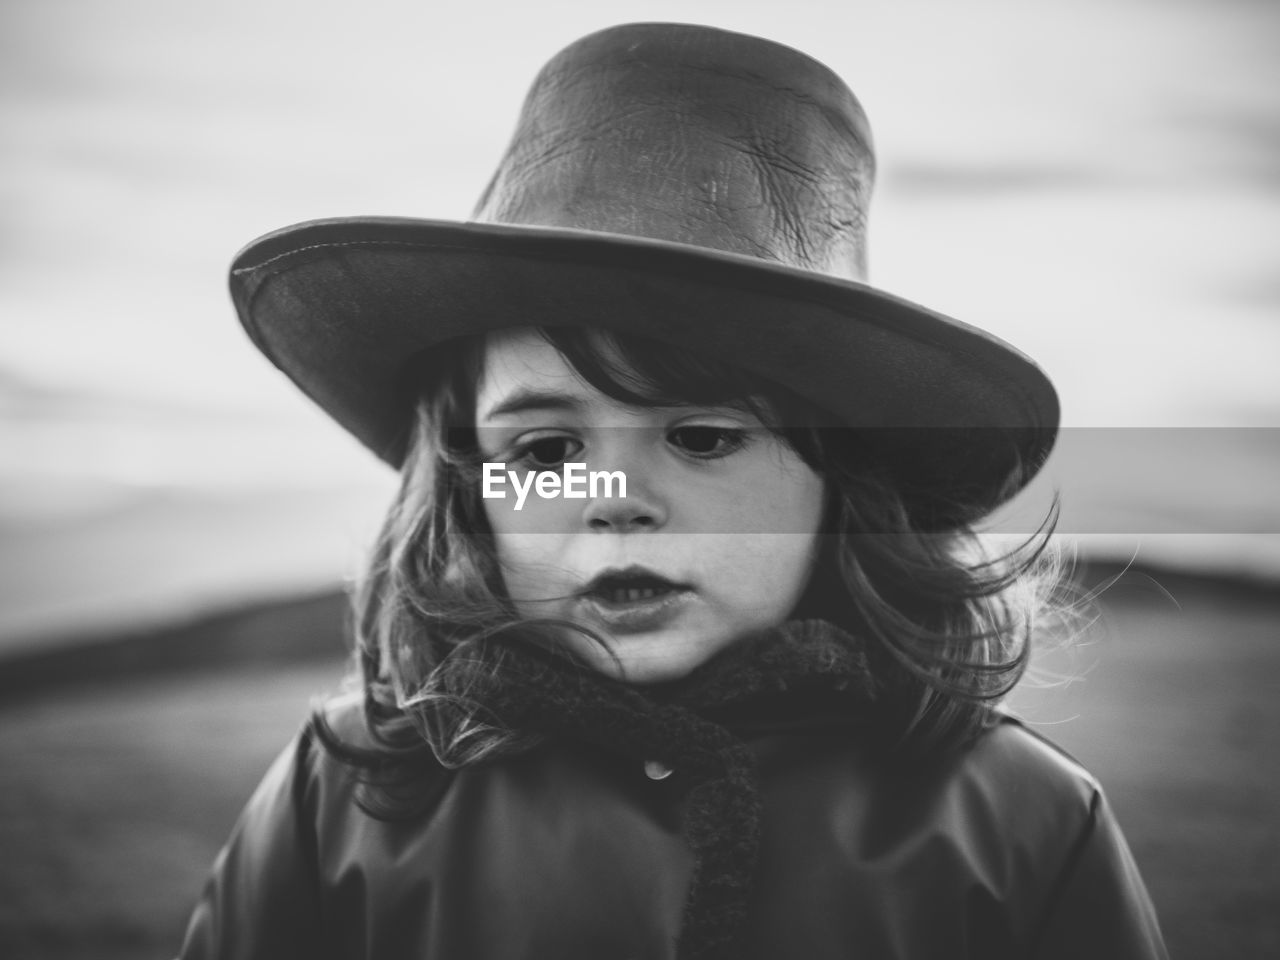 hat, portrait, clothing, one person, childhood, child, real people, front view, headshot, focus on foreground, leisure activity, lifestyles, close-up, day, looking at camera, innocence, women, human face